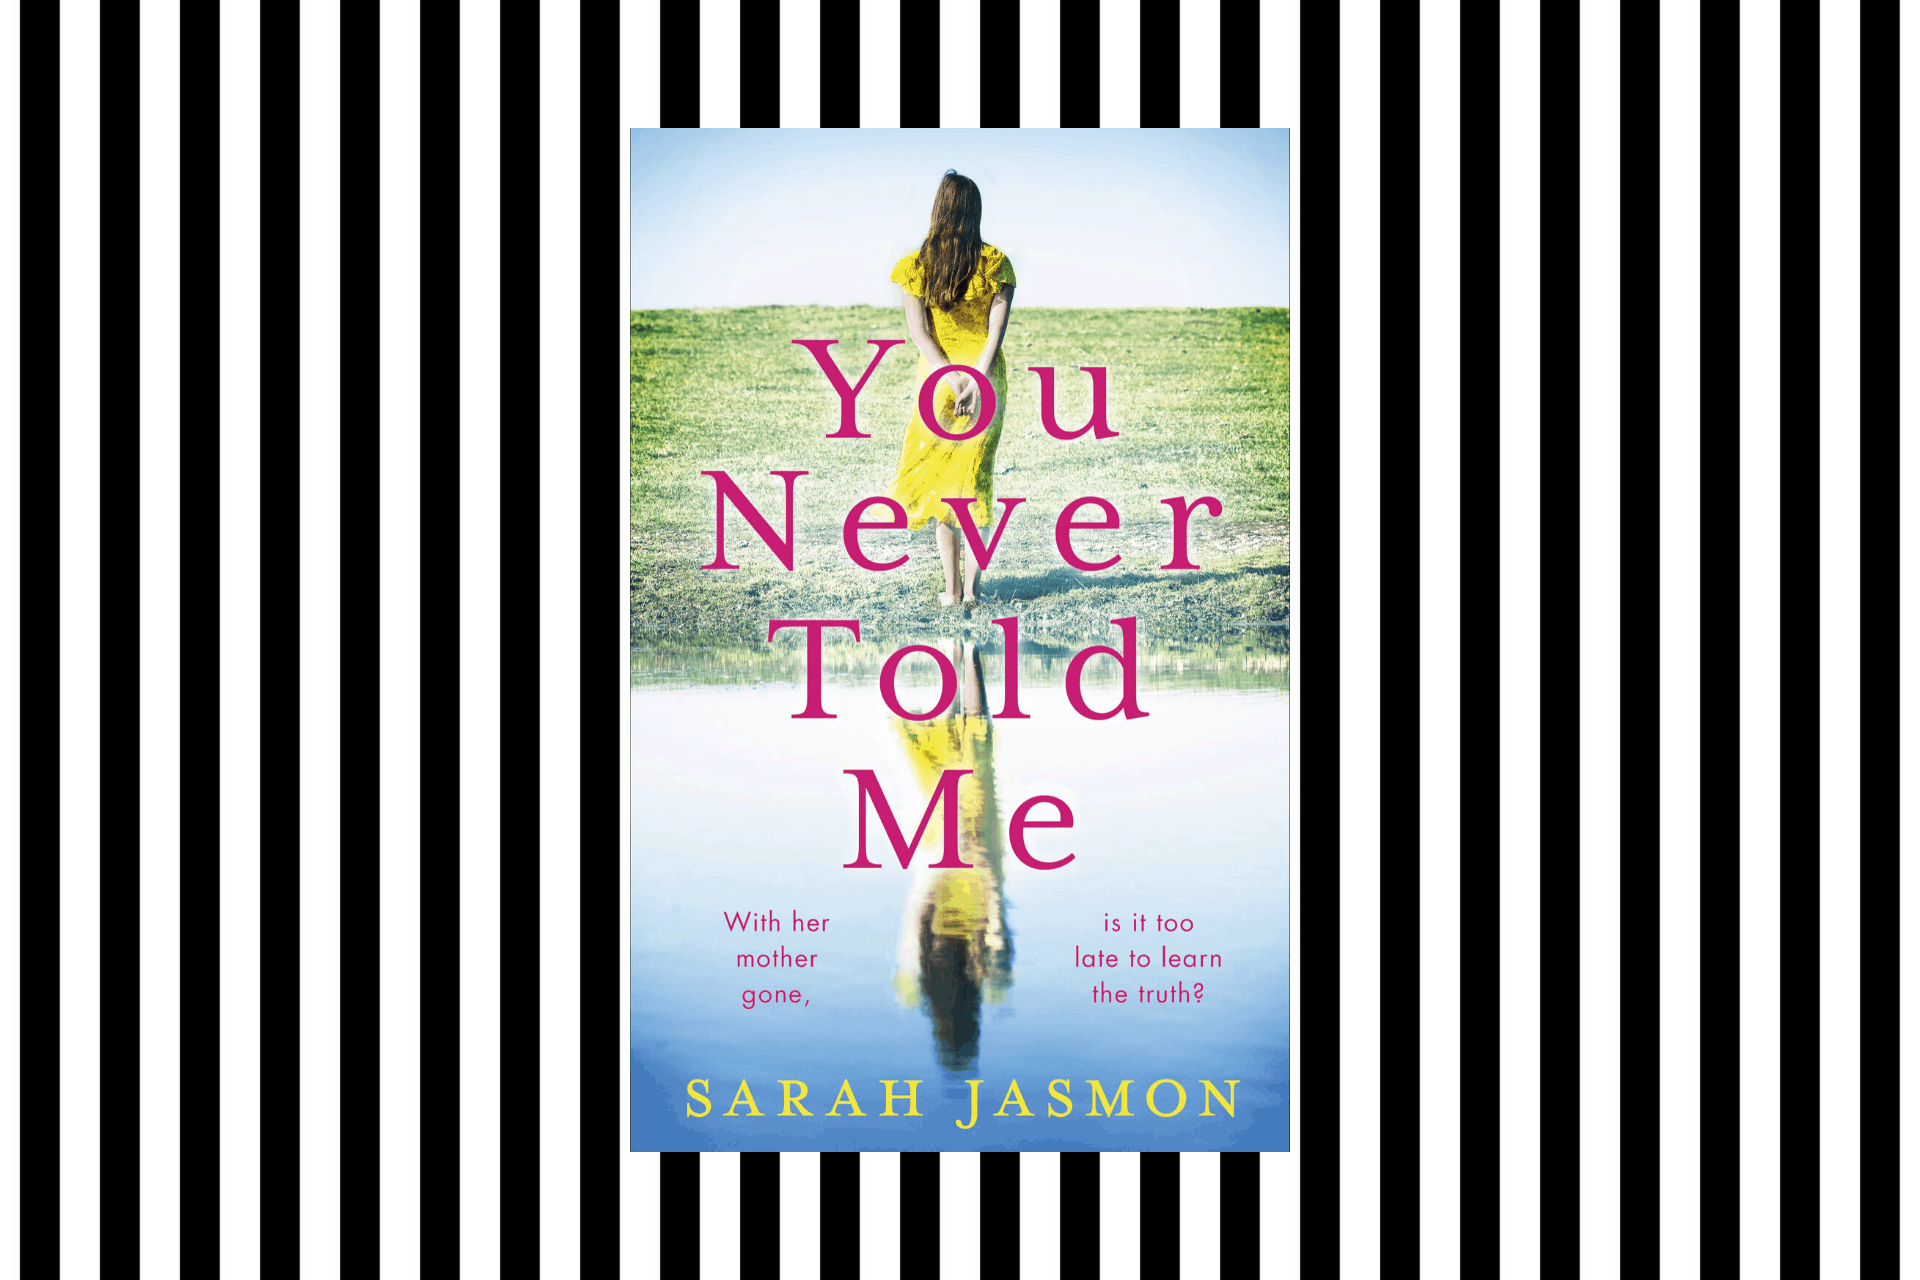 You Never Told Me by Sarah Jasmon